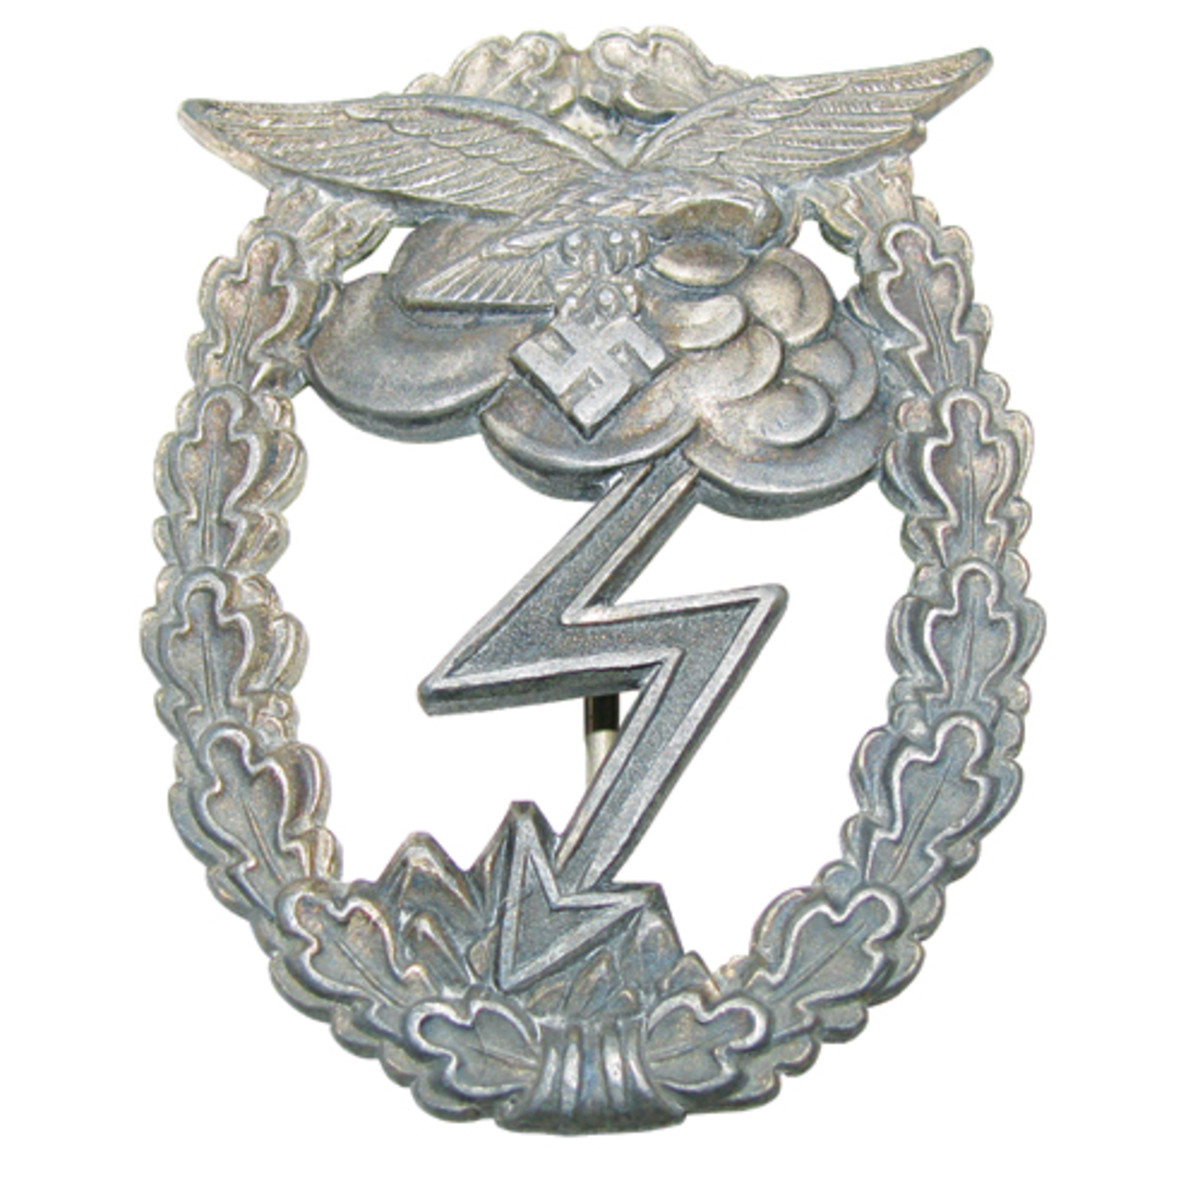 Later in the war, the ground assault badge was made of alloyed zinc.